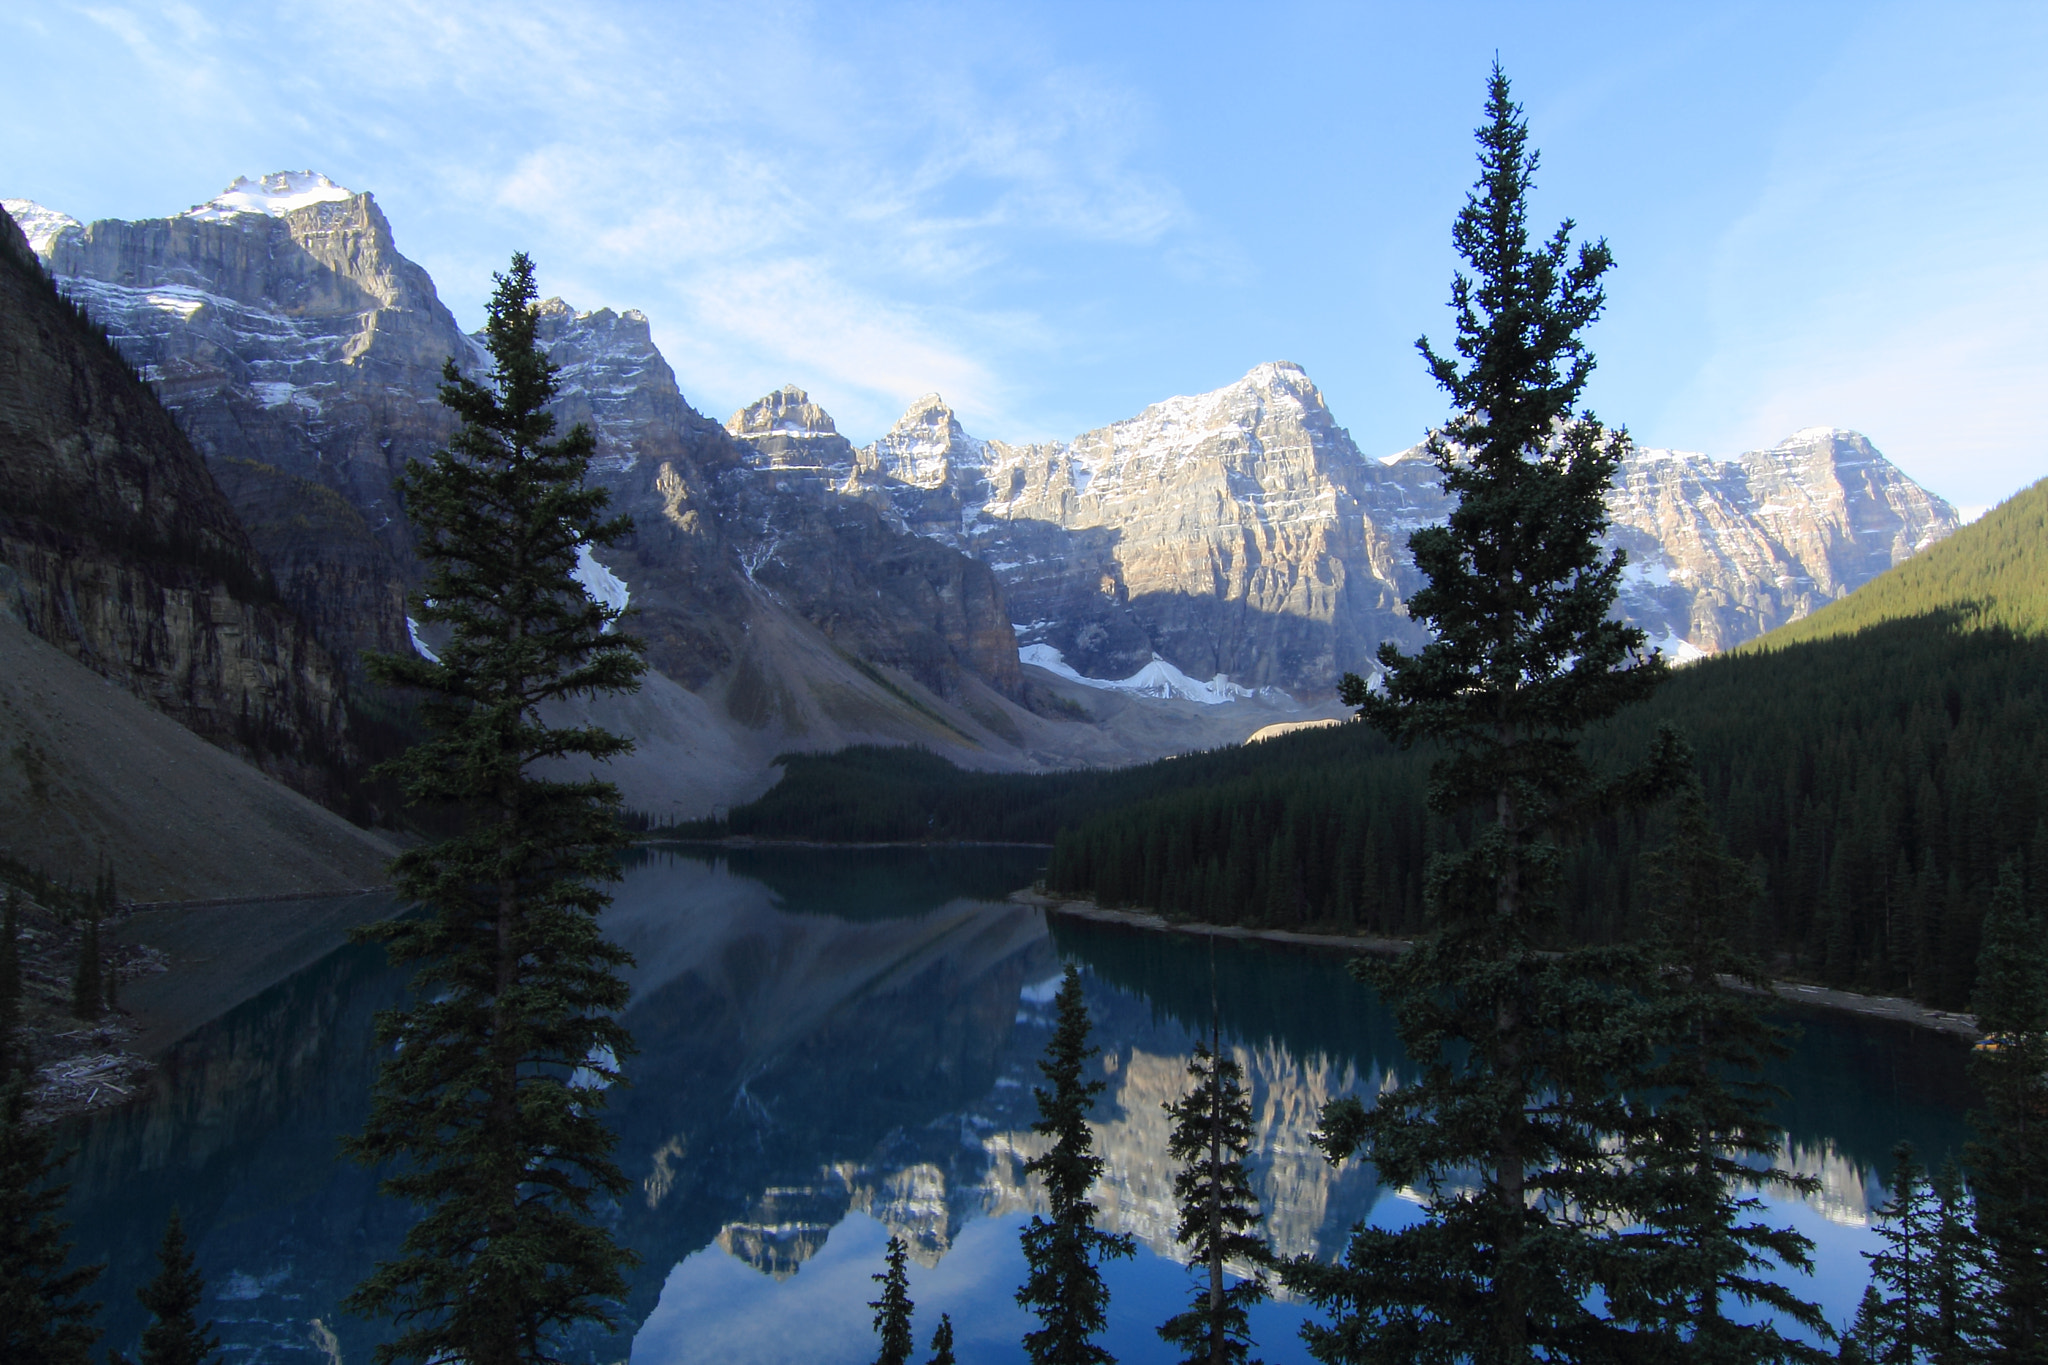 Photograph Morning light at Moraine Lake by Eva Lechner on 500px